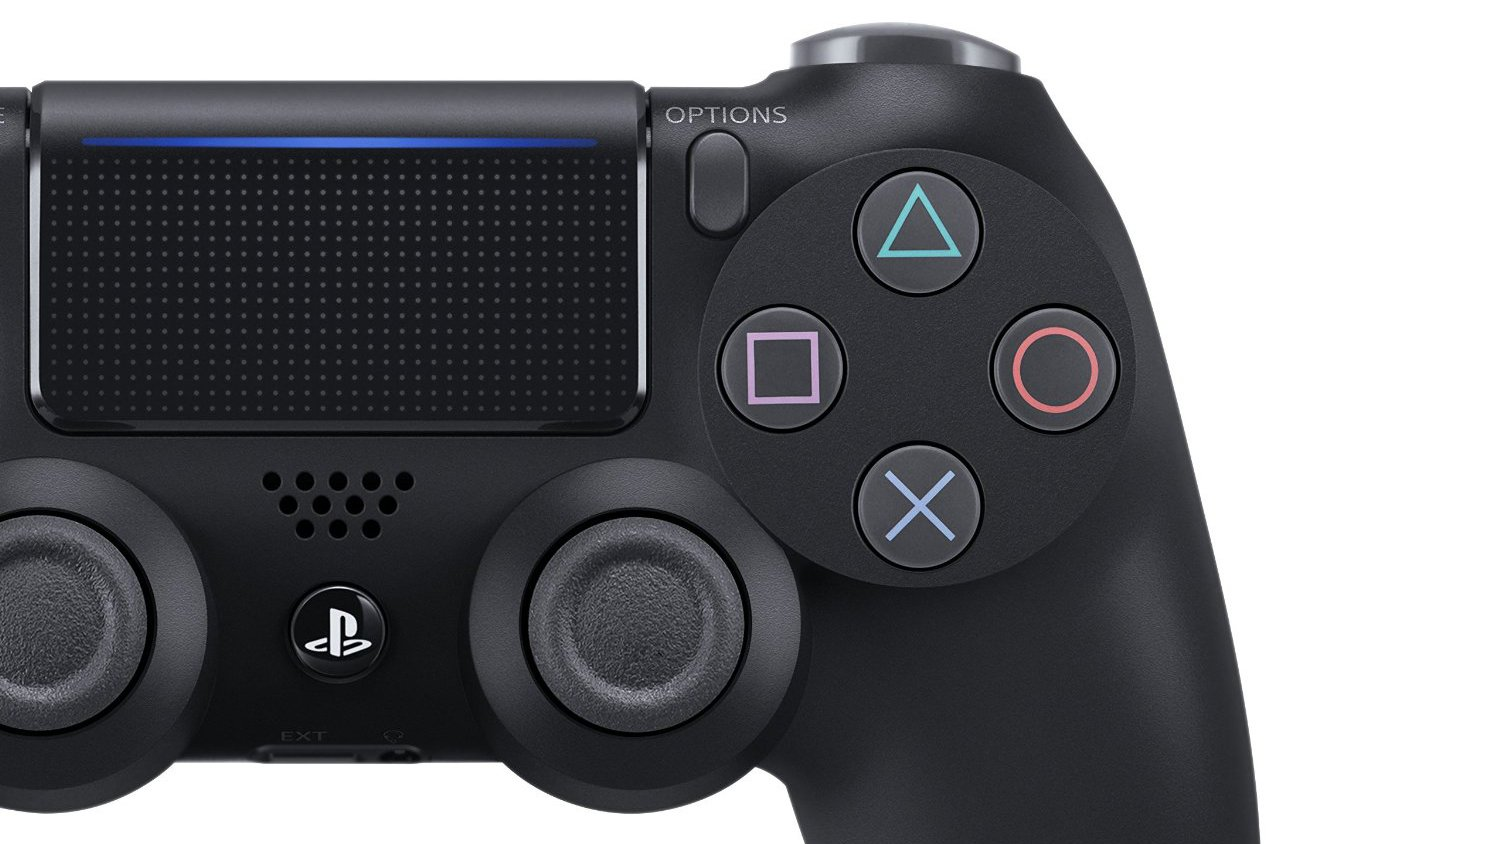 best_ps4_controller_-_dualshock_4.jpg?it